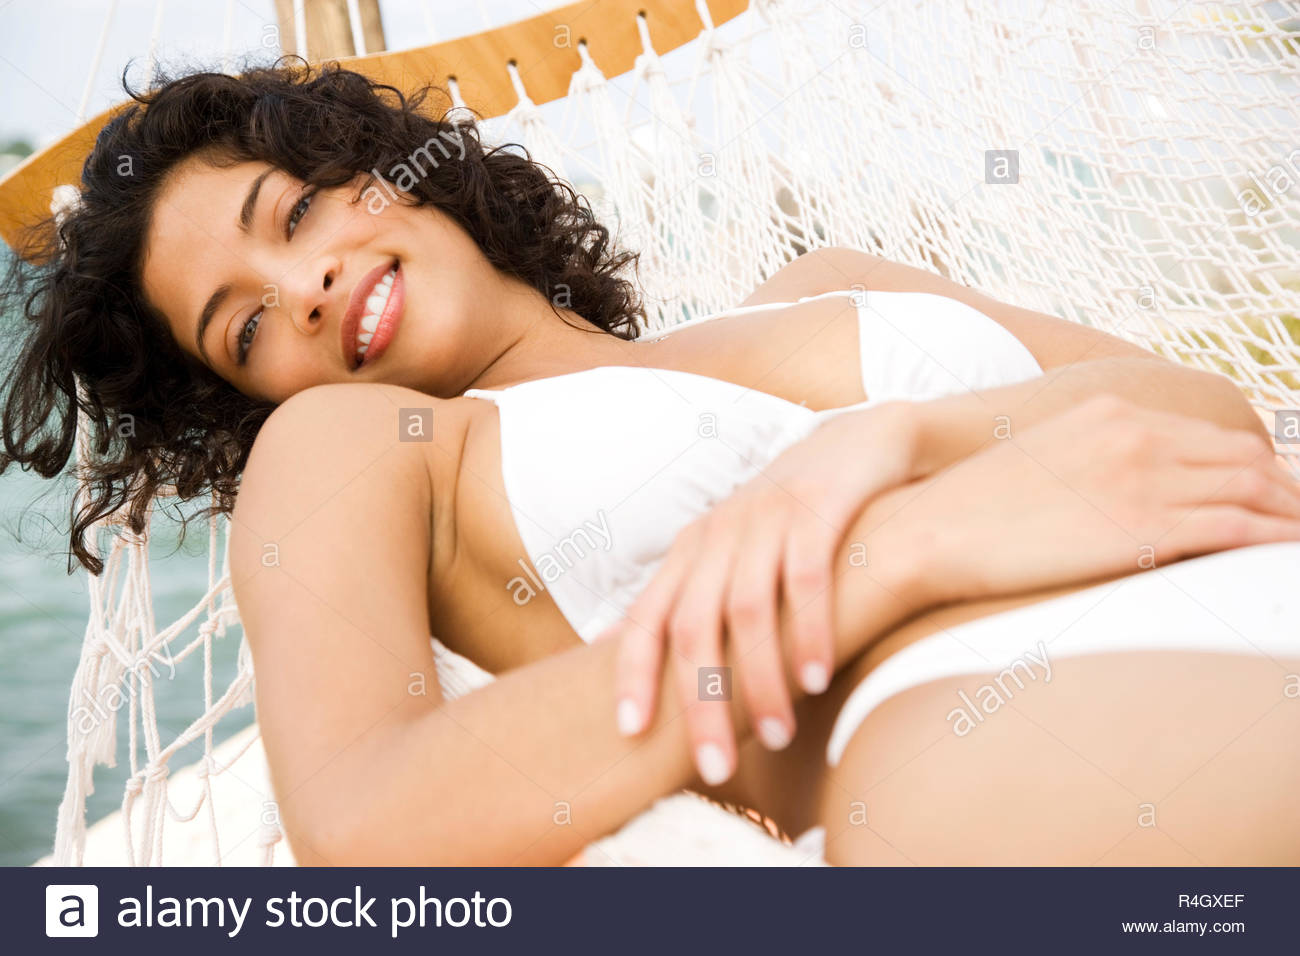 Woman lying in a hammock on a boat in the sun, wearing a white bikini - Stock Image